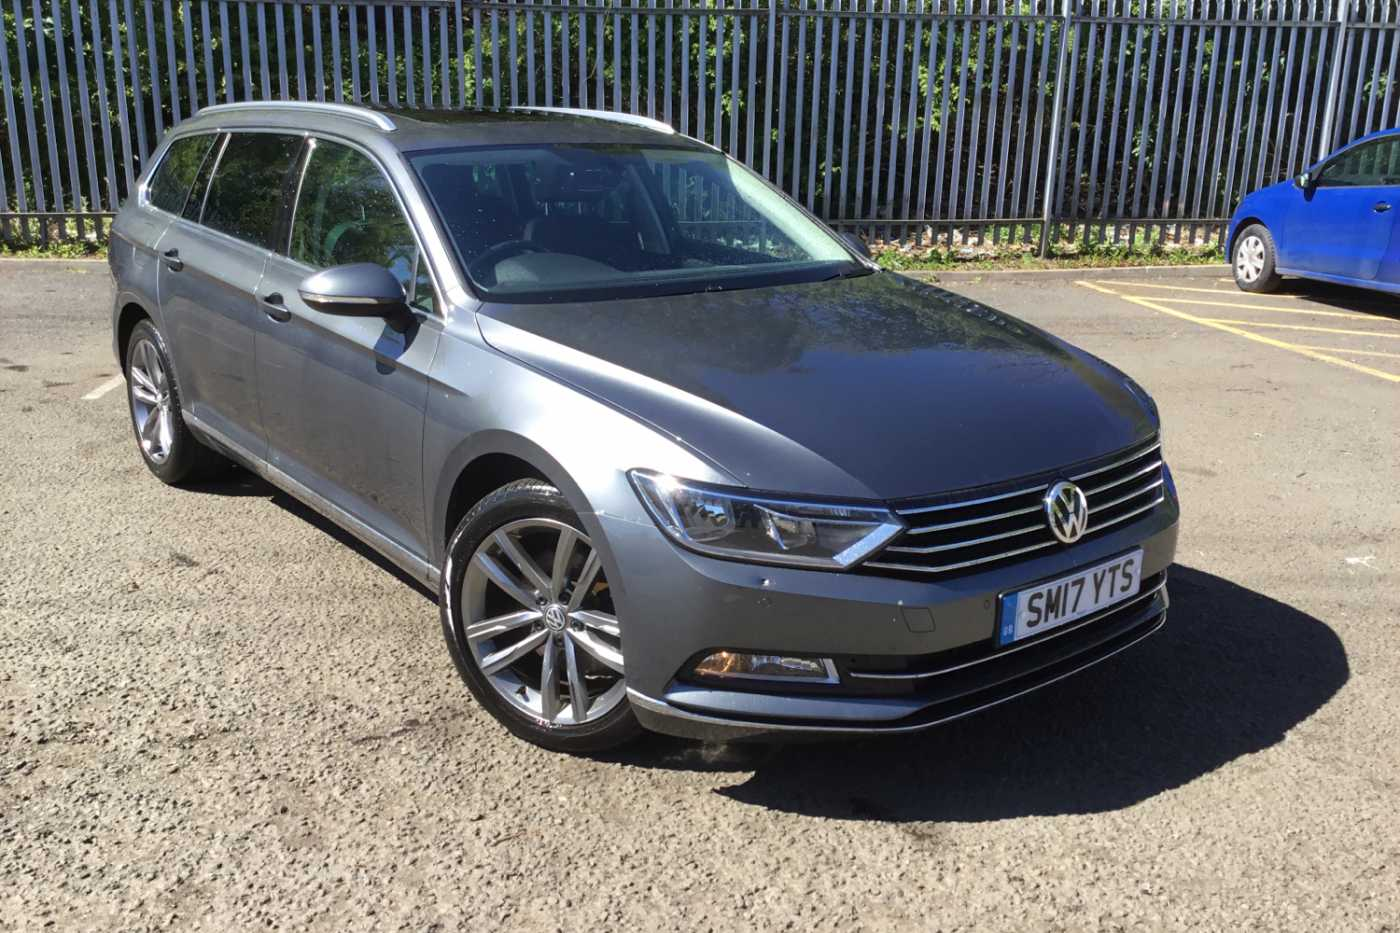 2017 Passat 2.0 TDI GT 150PS DSG Estate for Sale in Edinburgh